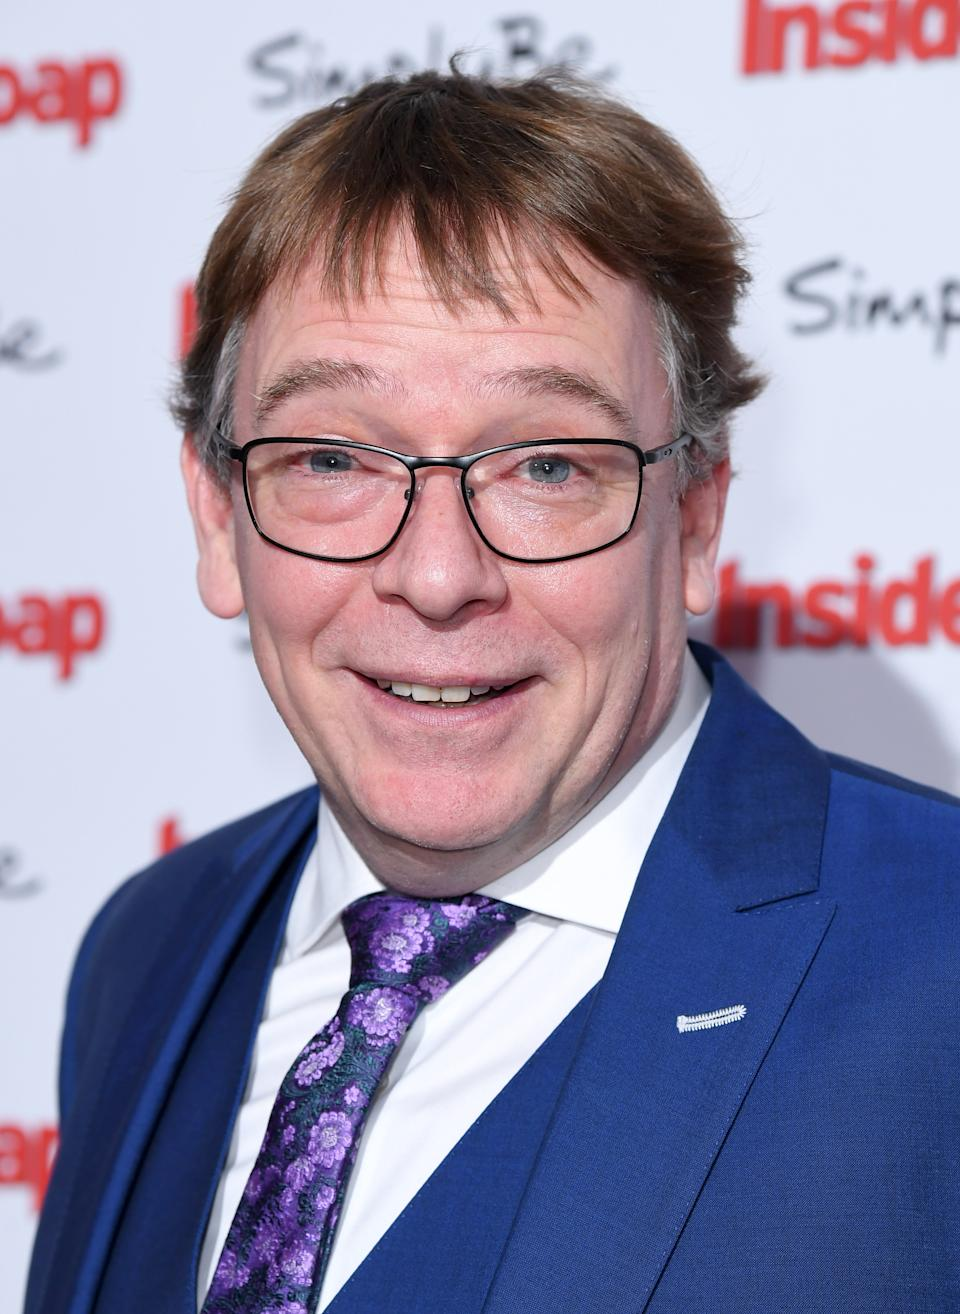 Adam Woodyatt attends the Inside Soap Awards at The Hippodrome on November 6, 2017 in London, England.  (Photo by Karwai Tang/WireImage)